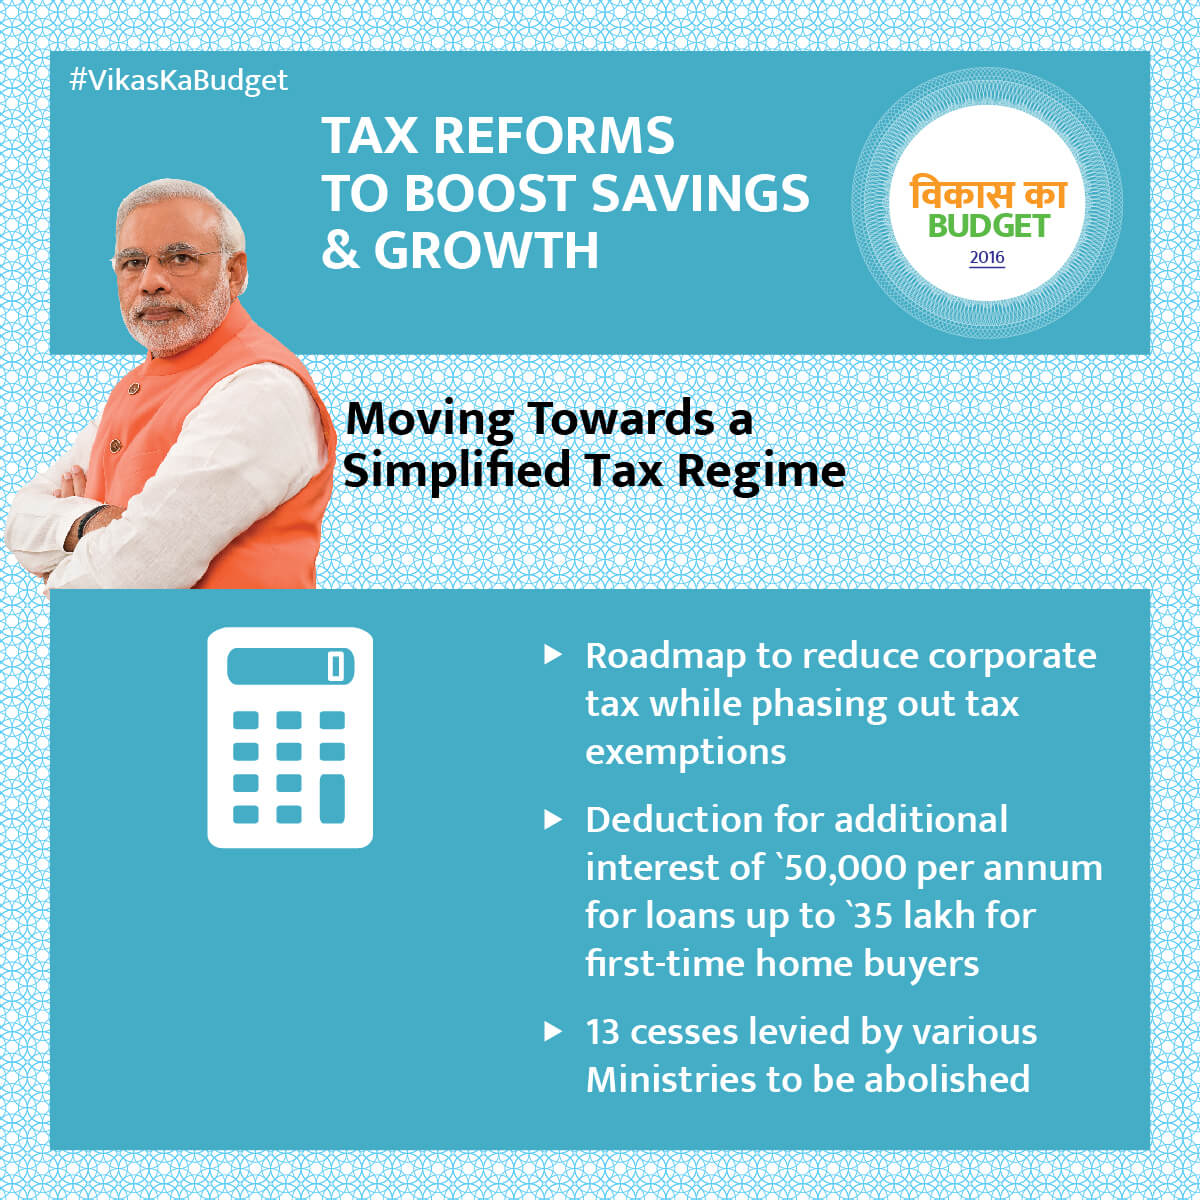 budget_tax reforms